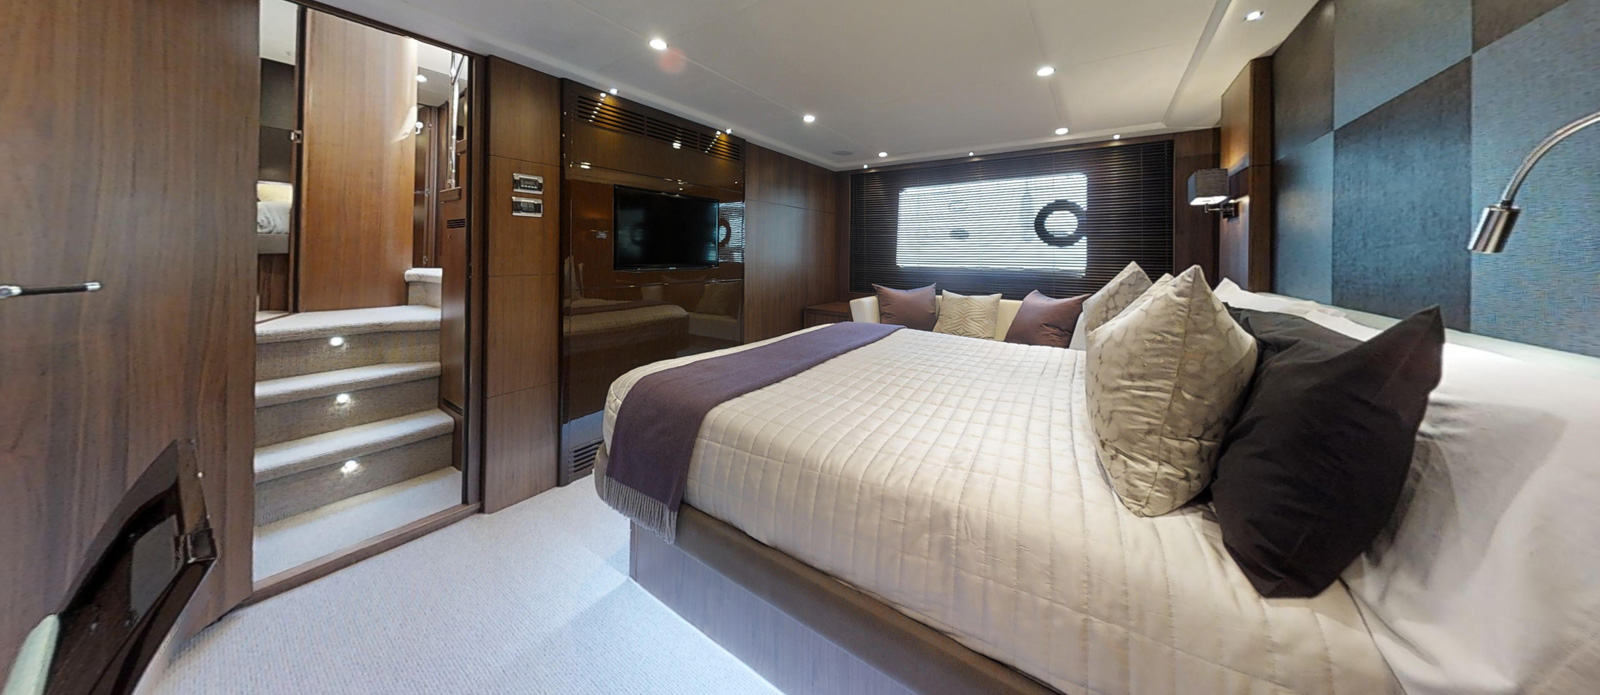 Princess 72 Blonde Moment Master Cabin 2 - For Sale with Bristow-Holmes